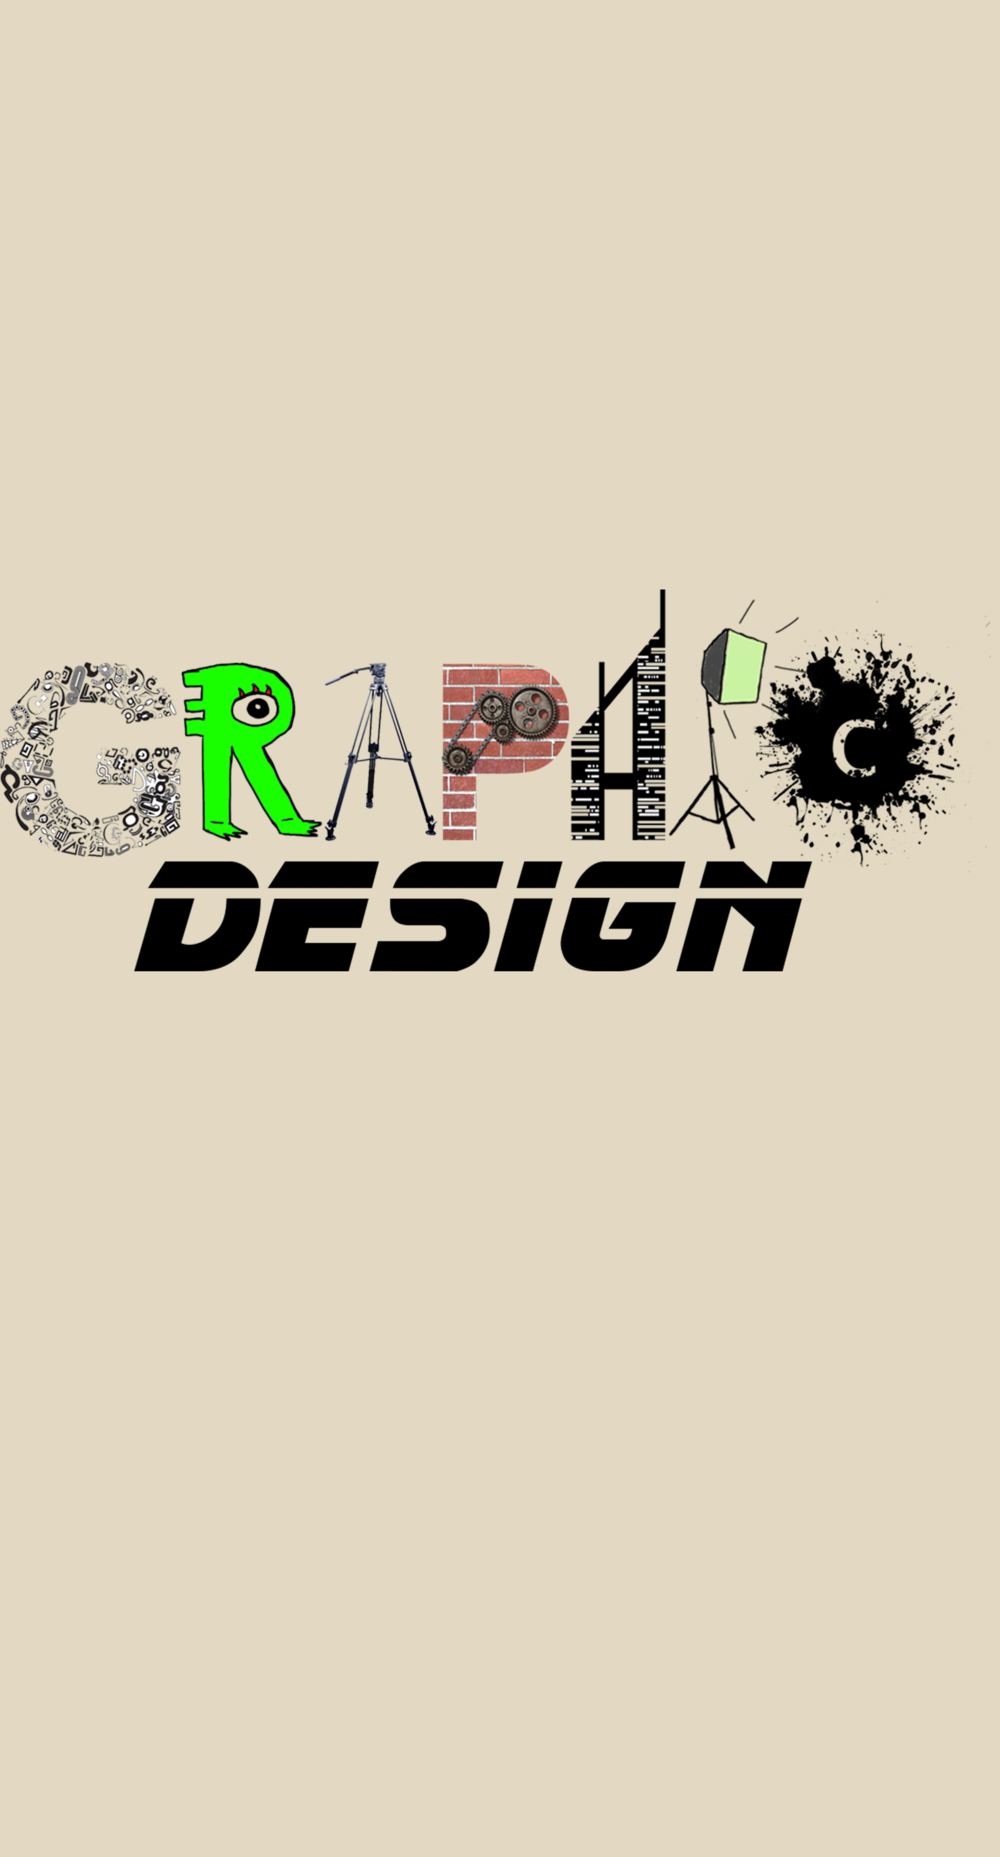 Graphics          Graphics are essential for brand recognition. The more       recognizable your logo or graphic is, the more your                 brand is known. This is why we produce superb graphics for every company we work with.